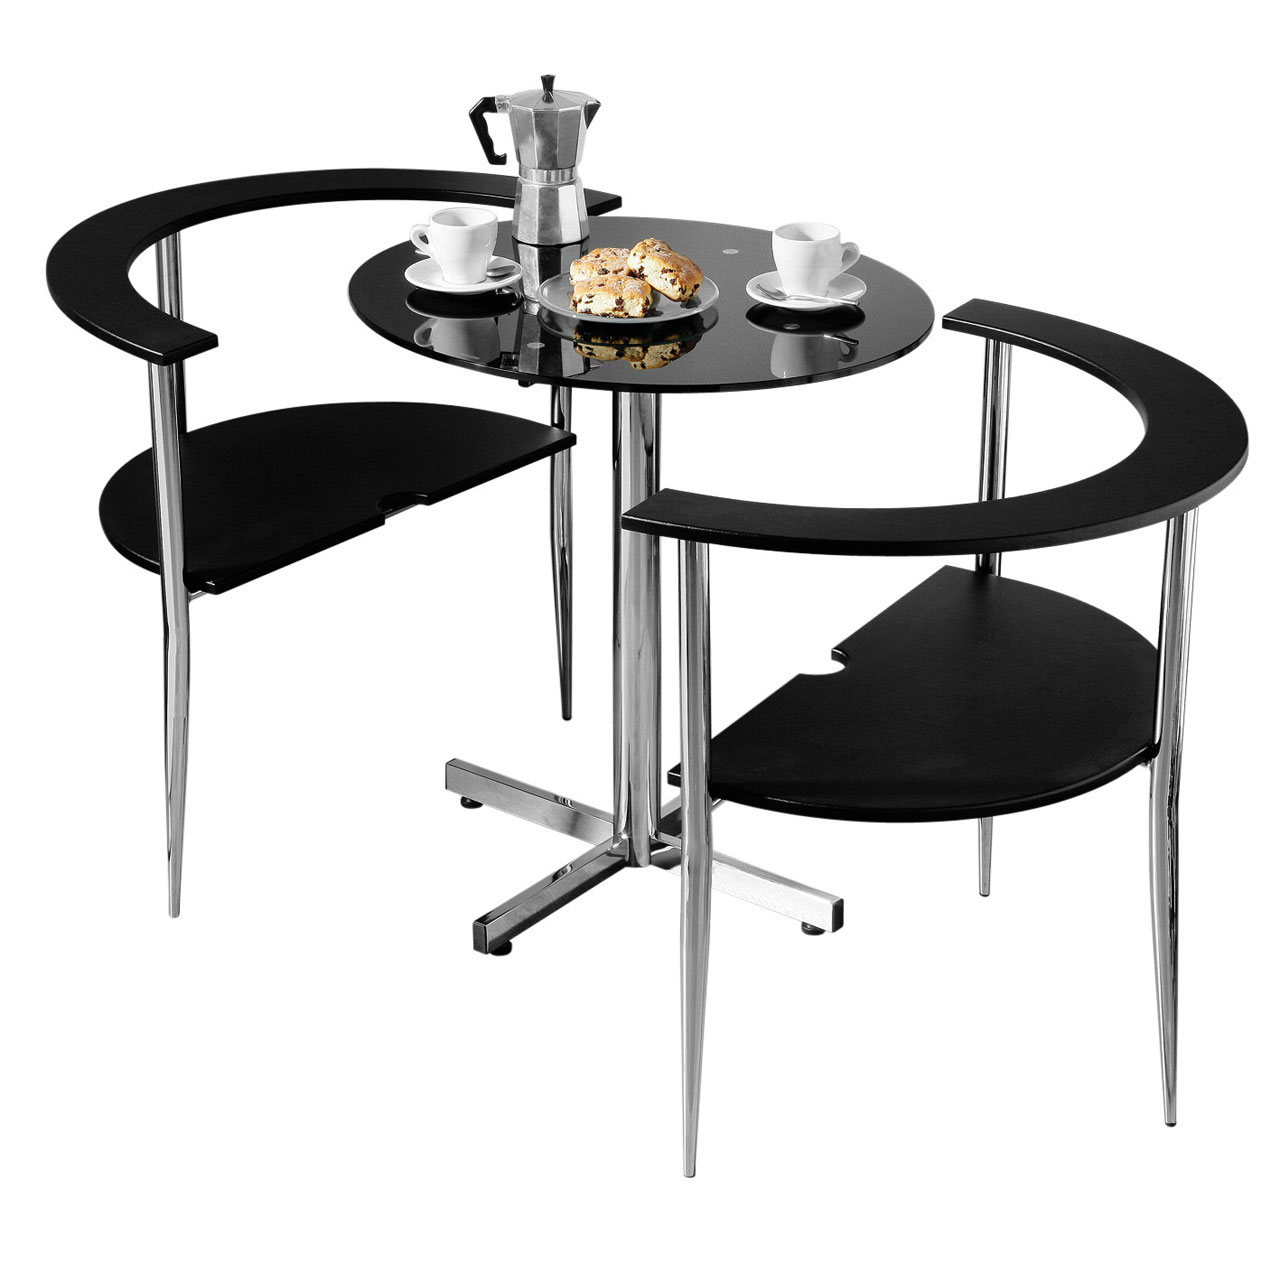 Table With 2 Chairs Details About 3pc Round Love Dining Set Black Tempered Glass Table Top 2 Chairs Home Furniture